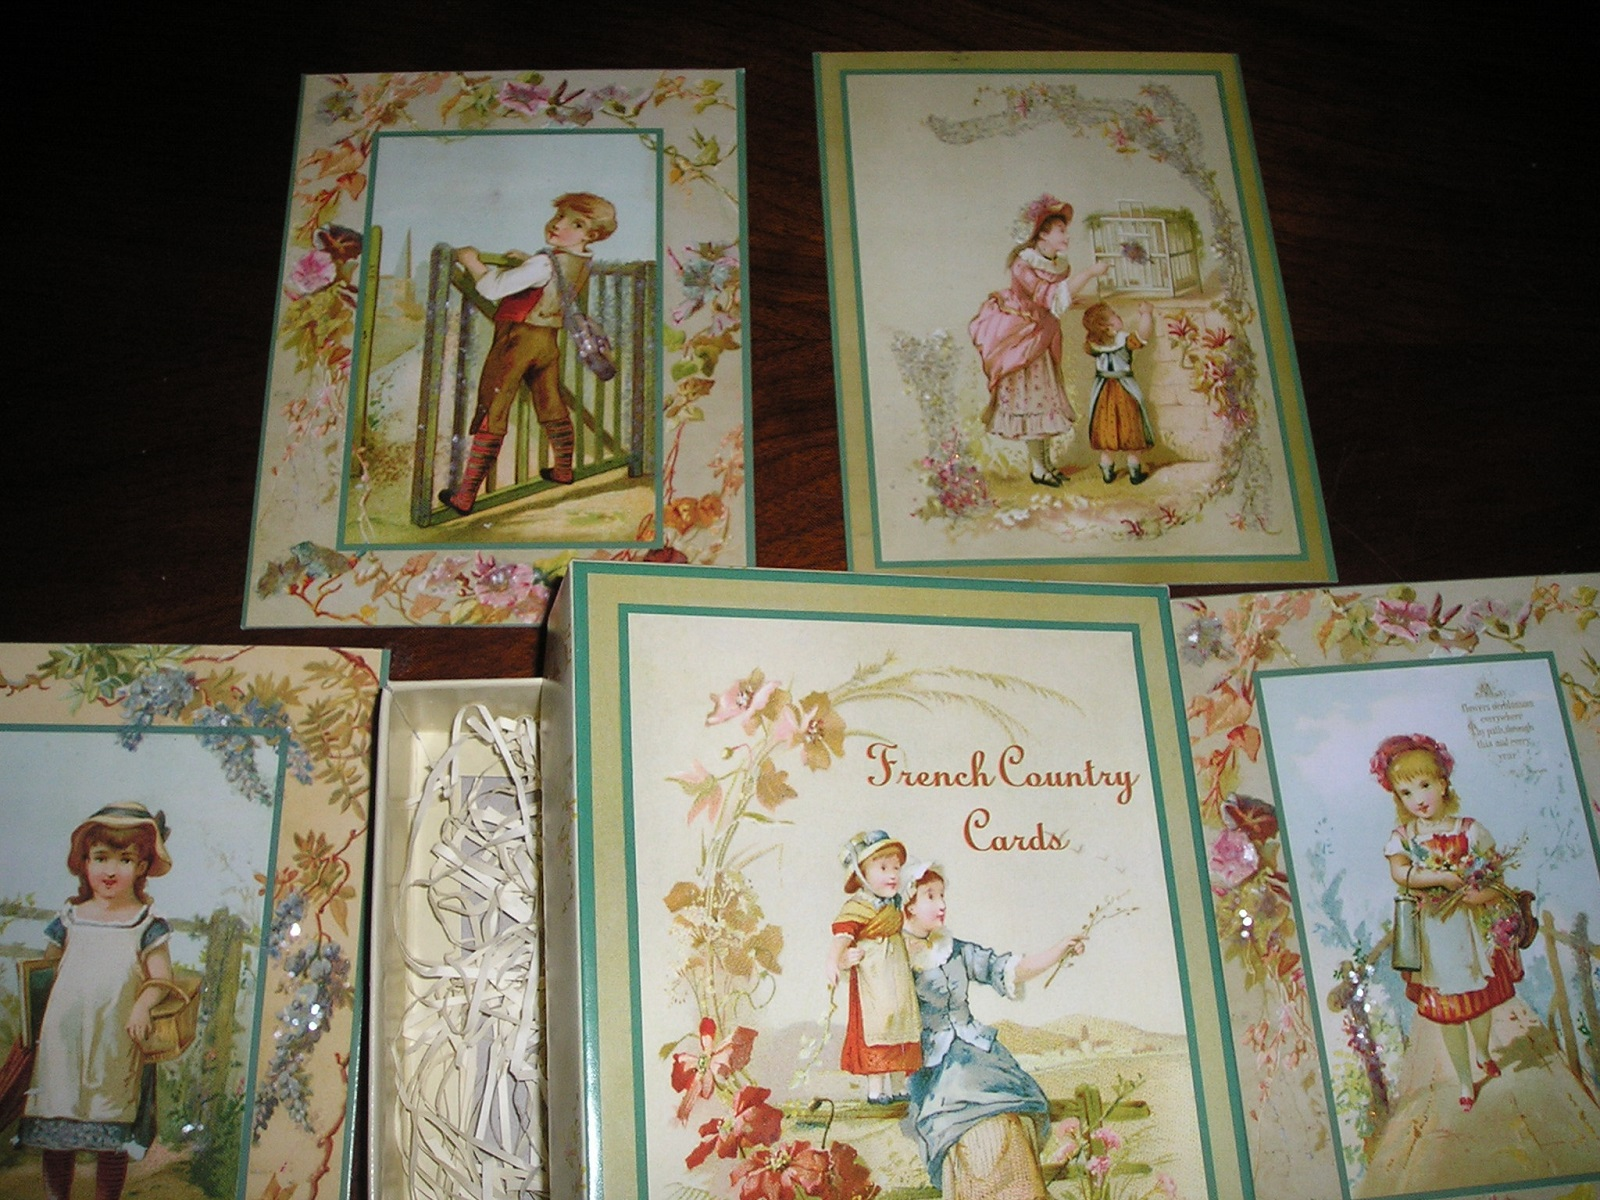 Bethany Lowe French Country Cards Bruce Elsass Vintage Collection Set of 8 Boxed